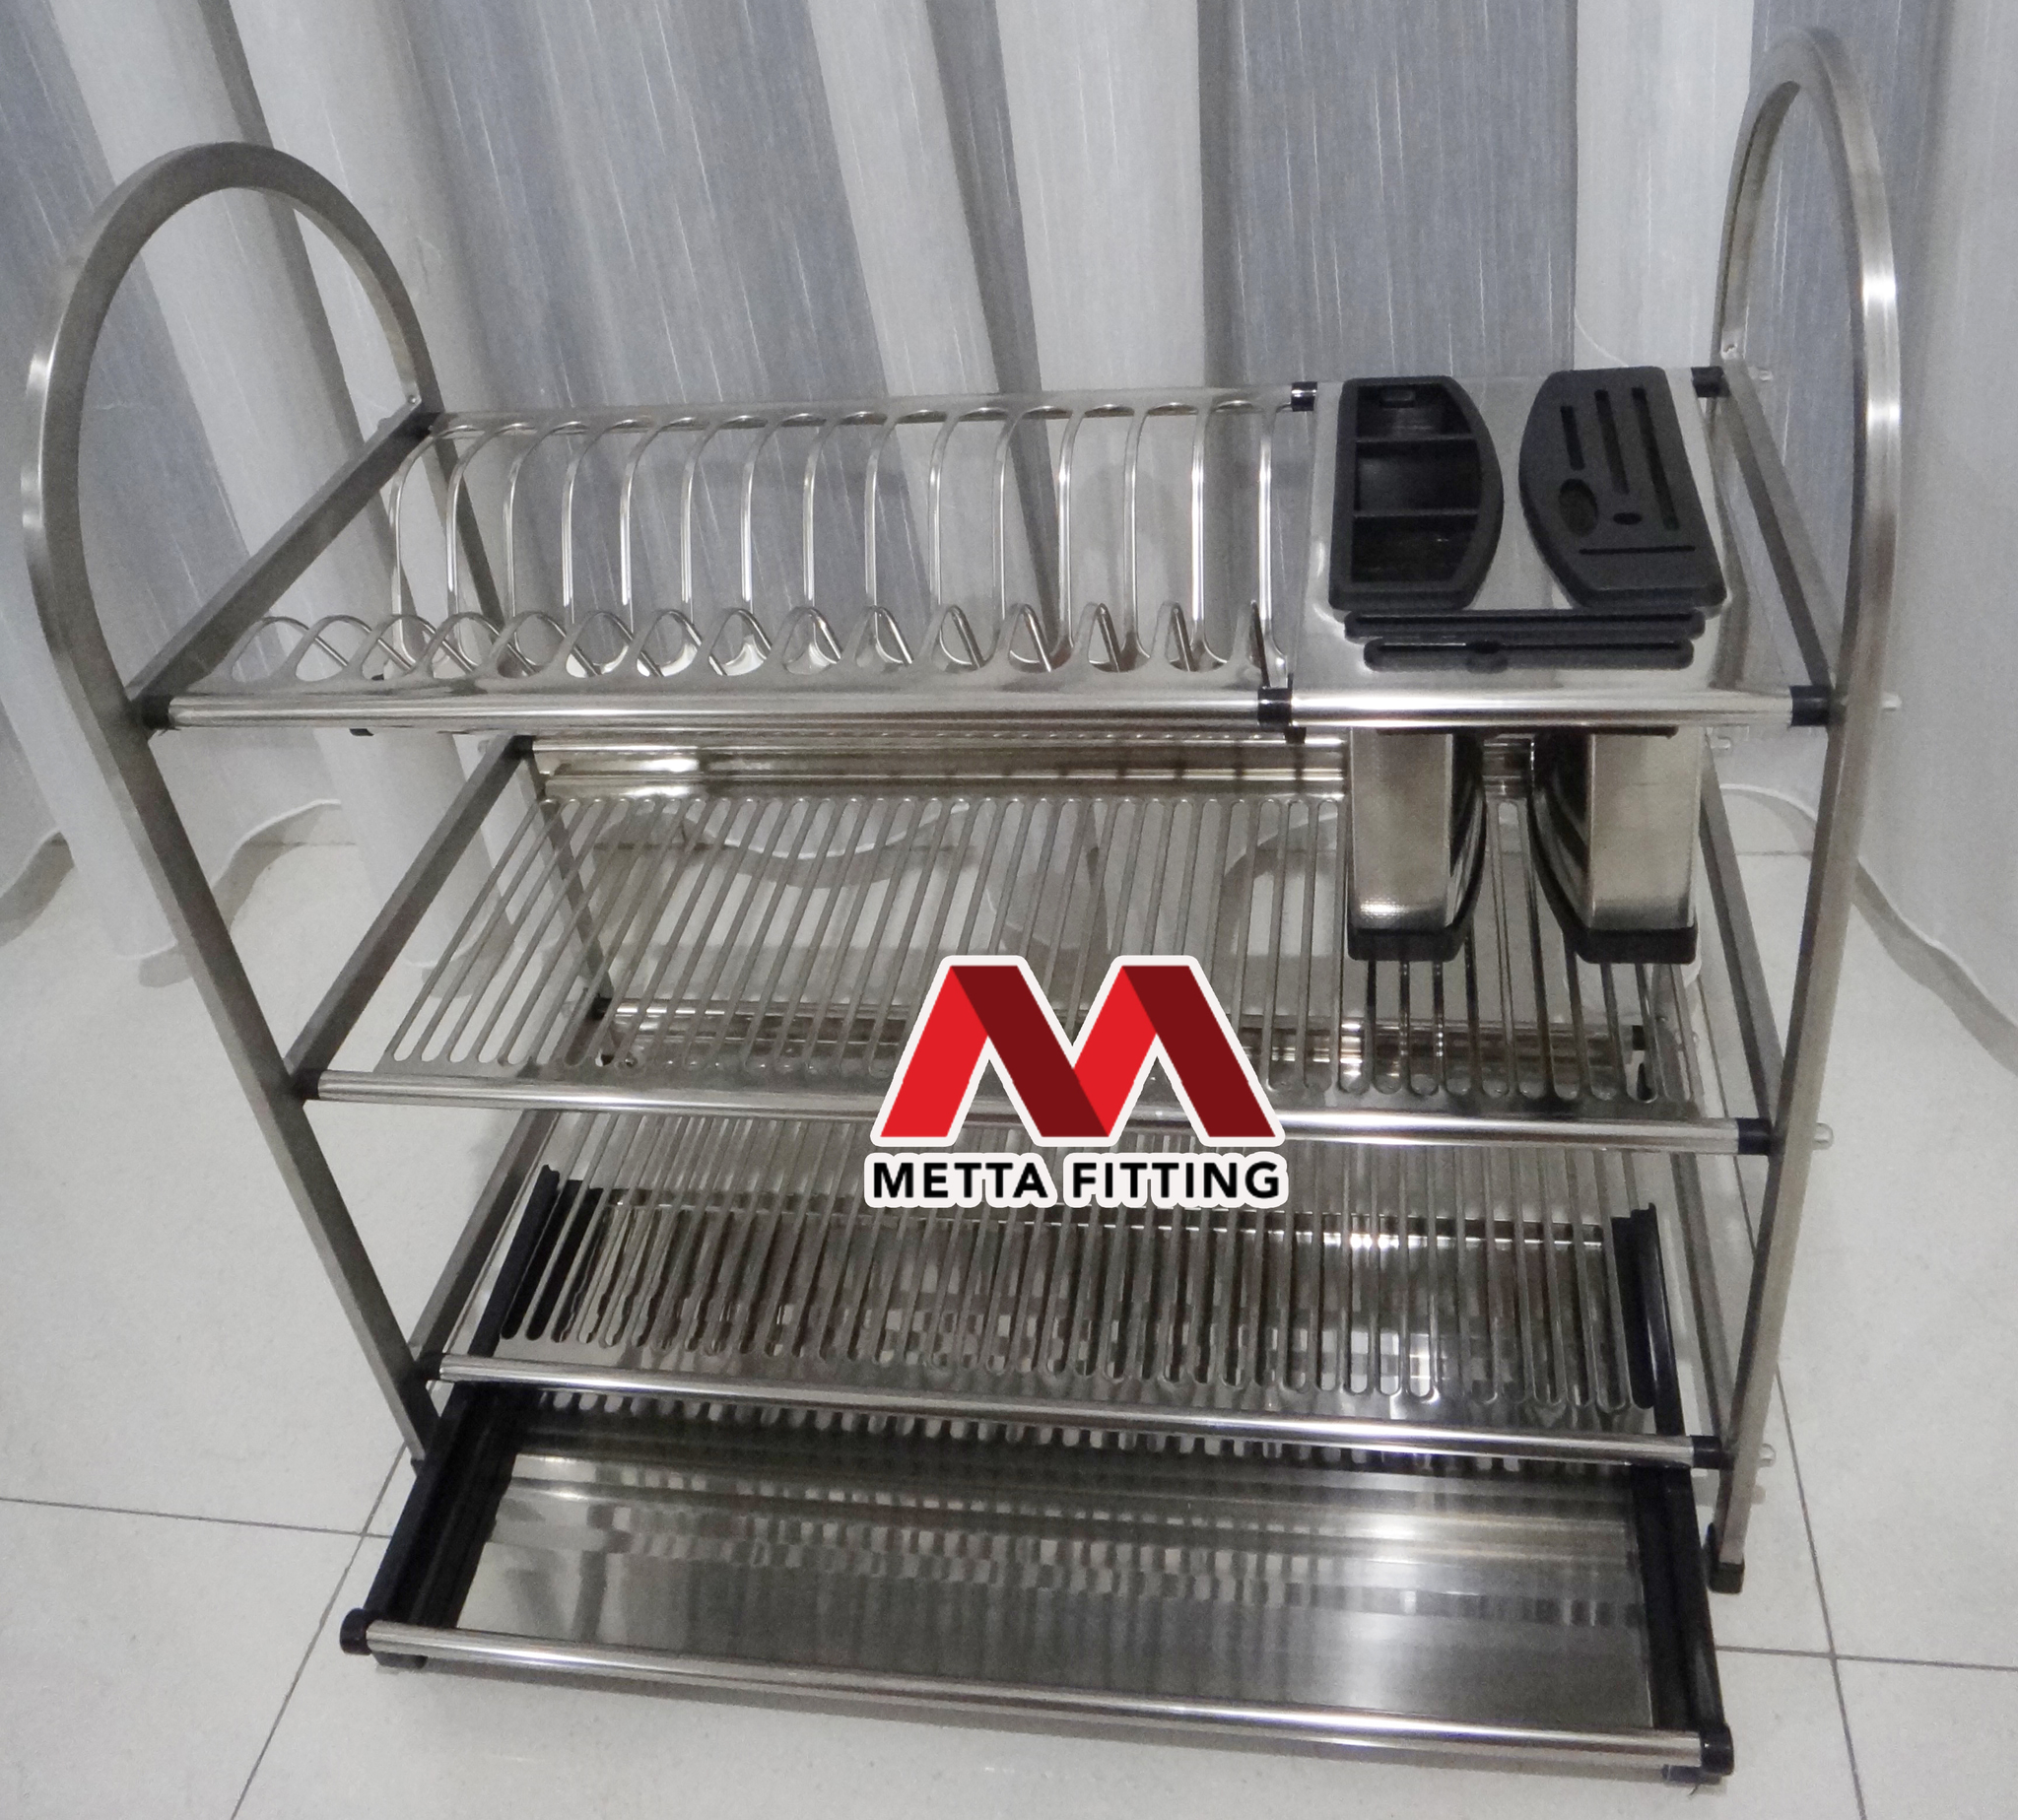 Model Rak Piring Stainless Terbaru